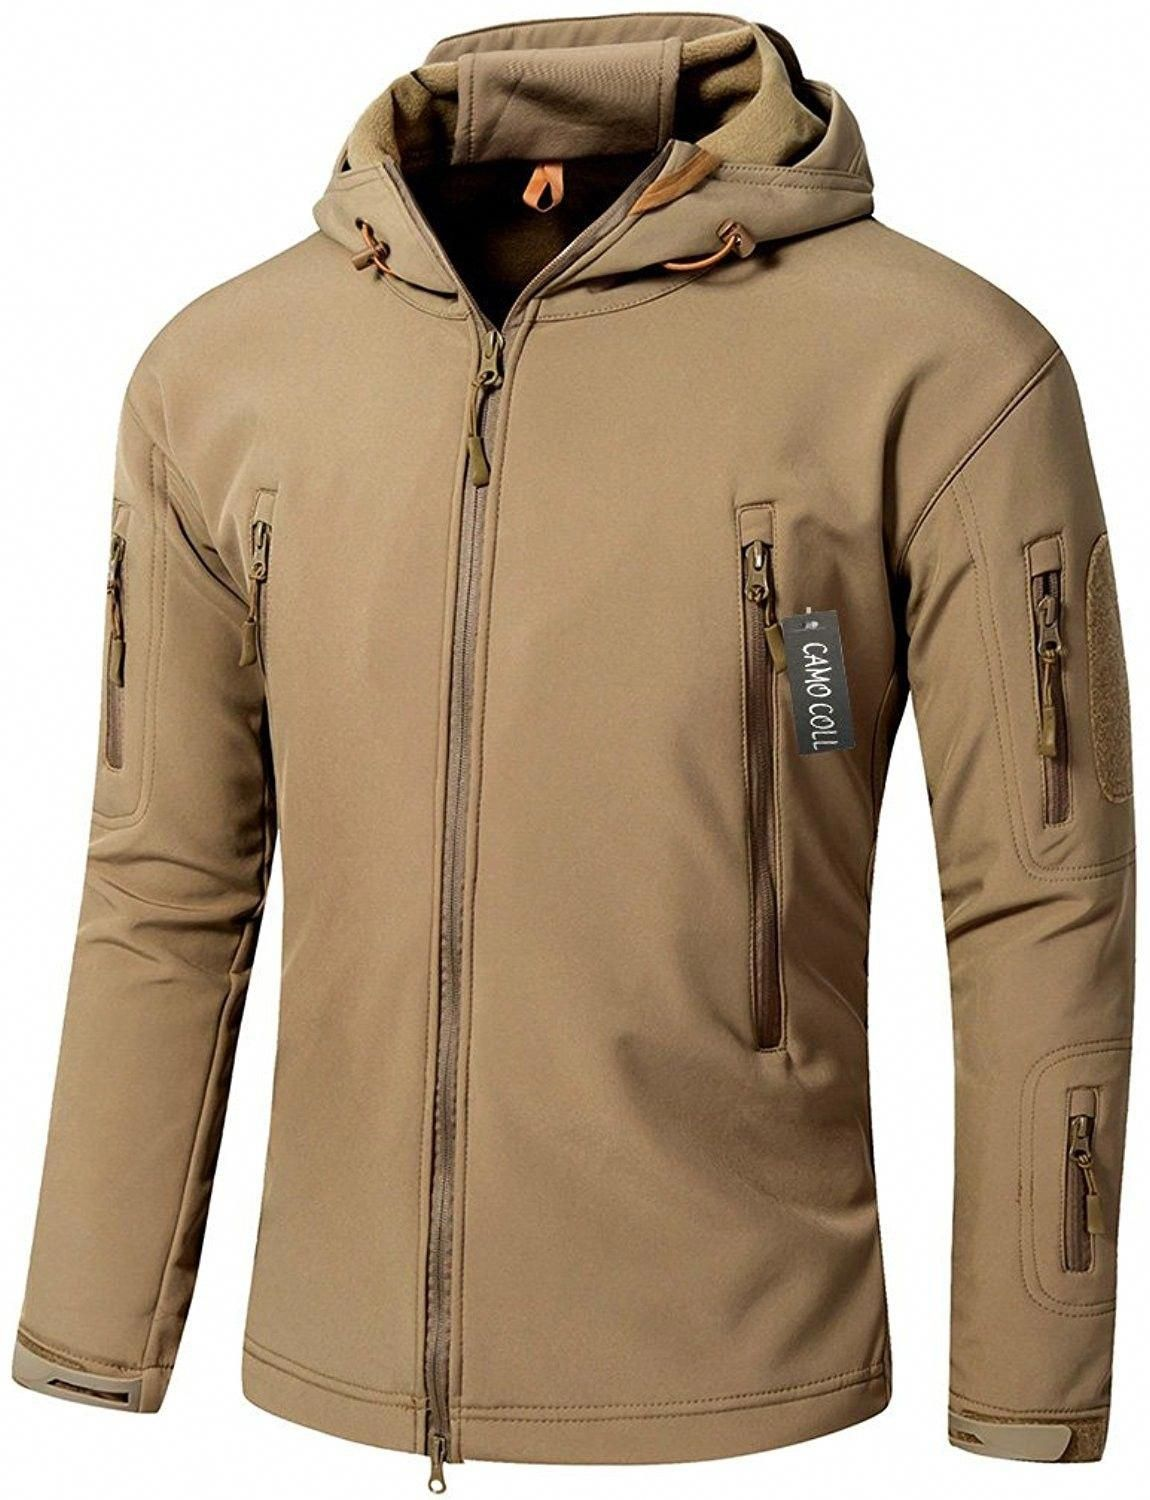 Men's Outdoor Soft Shell Hooded Tactical Jacket Earth